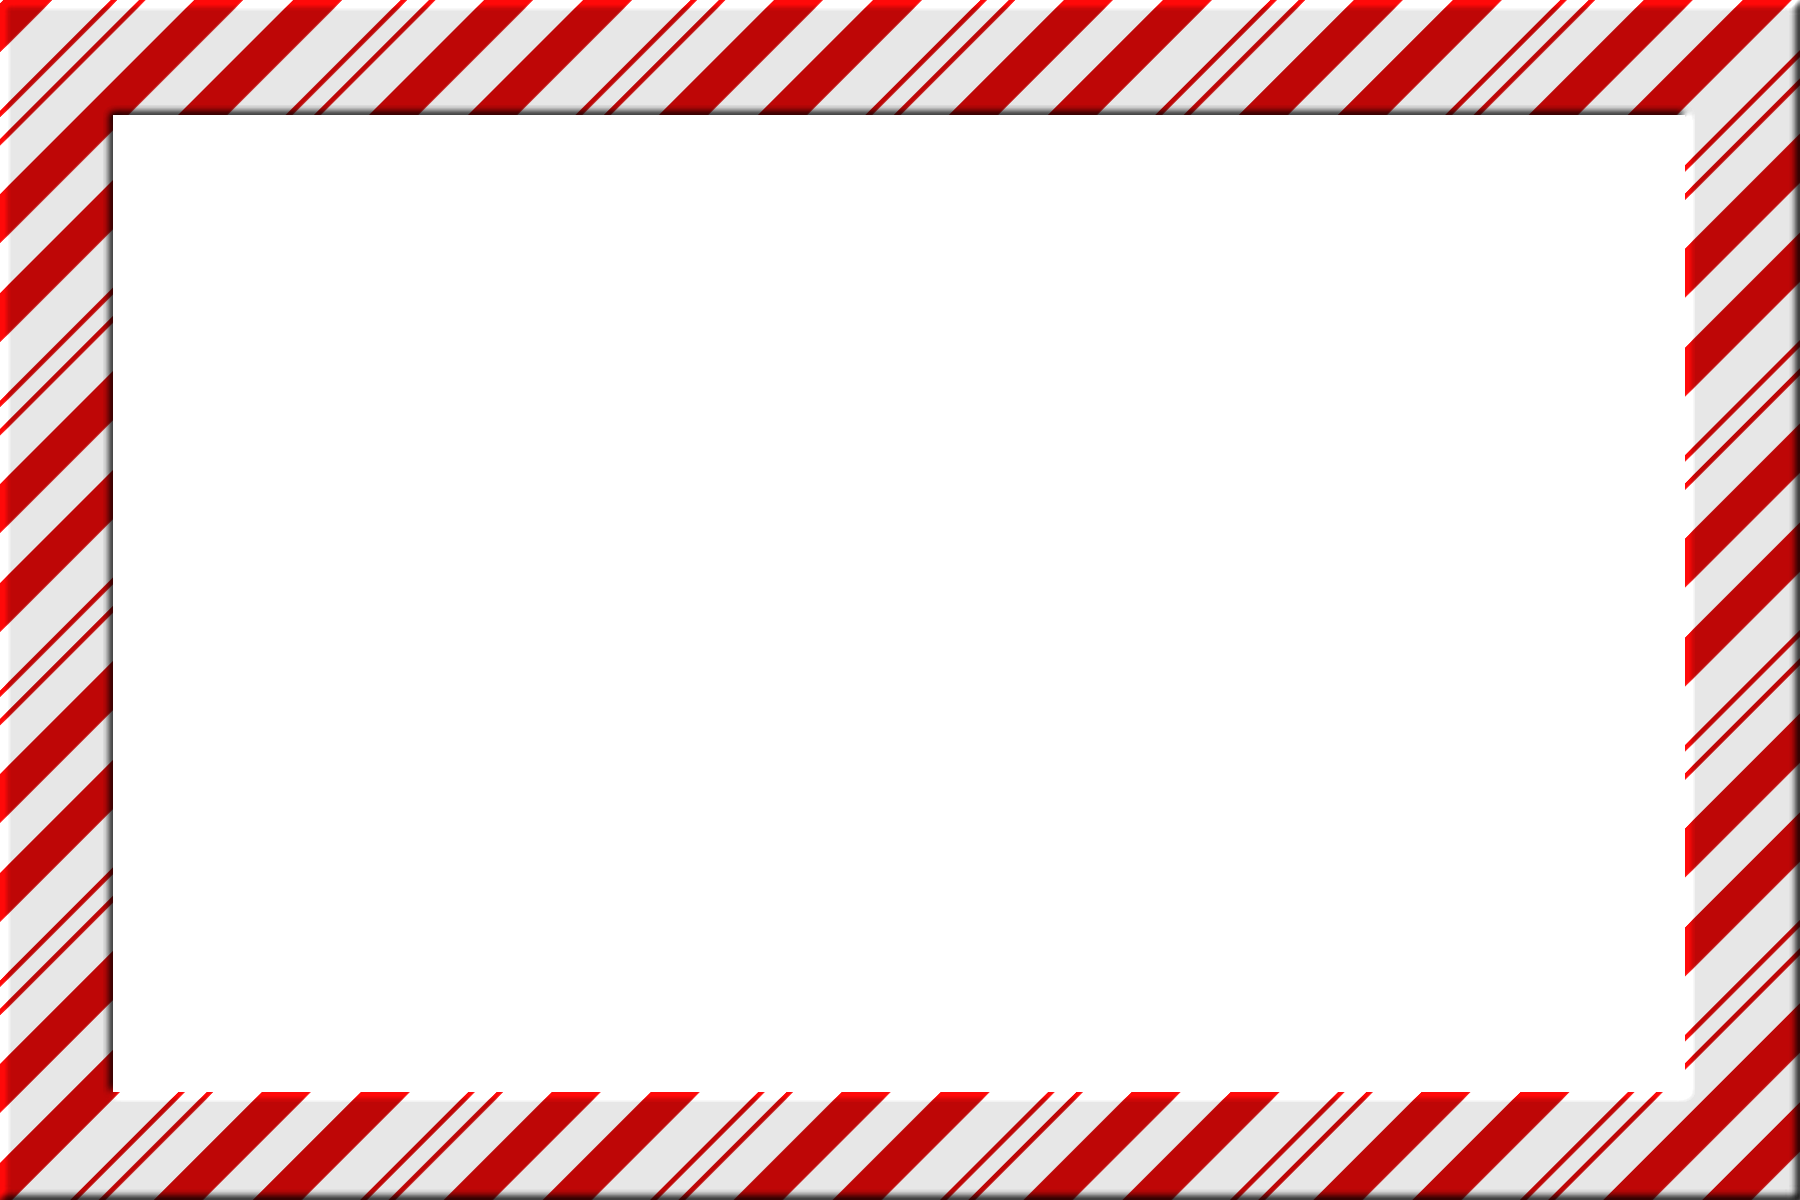 Clip art borders google. Candy cane border png